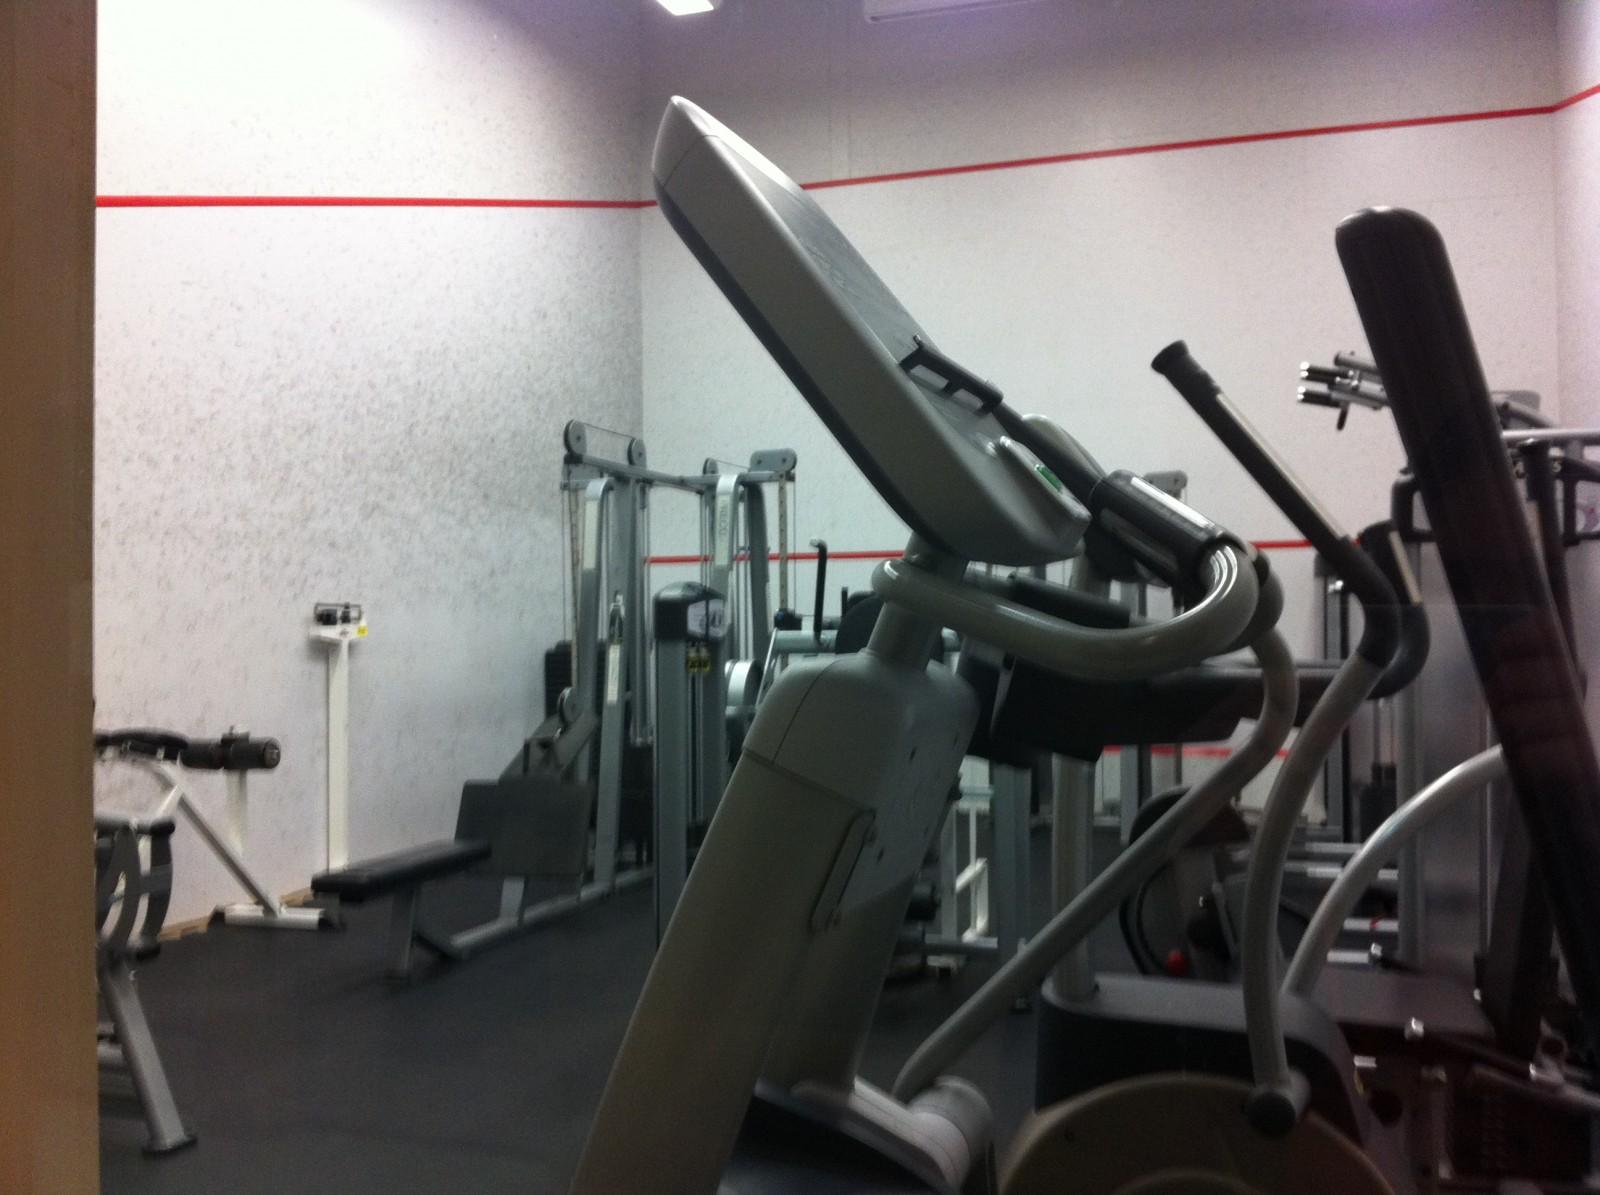 Should students buy a gym membership?